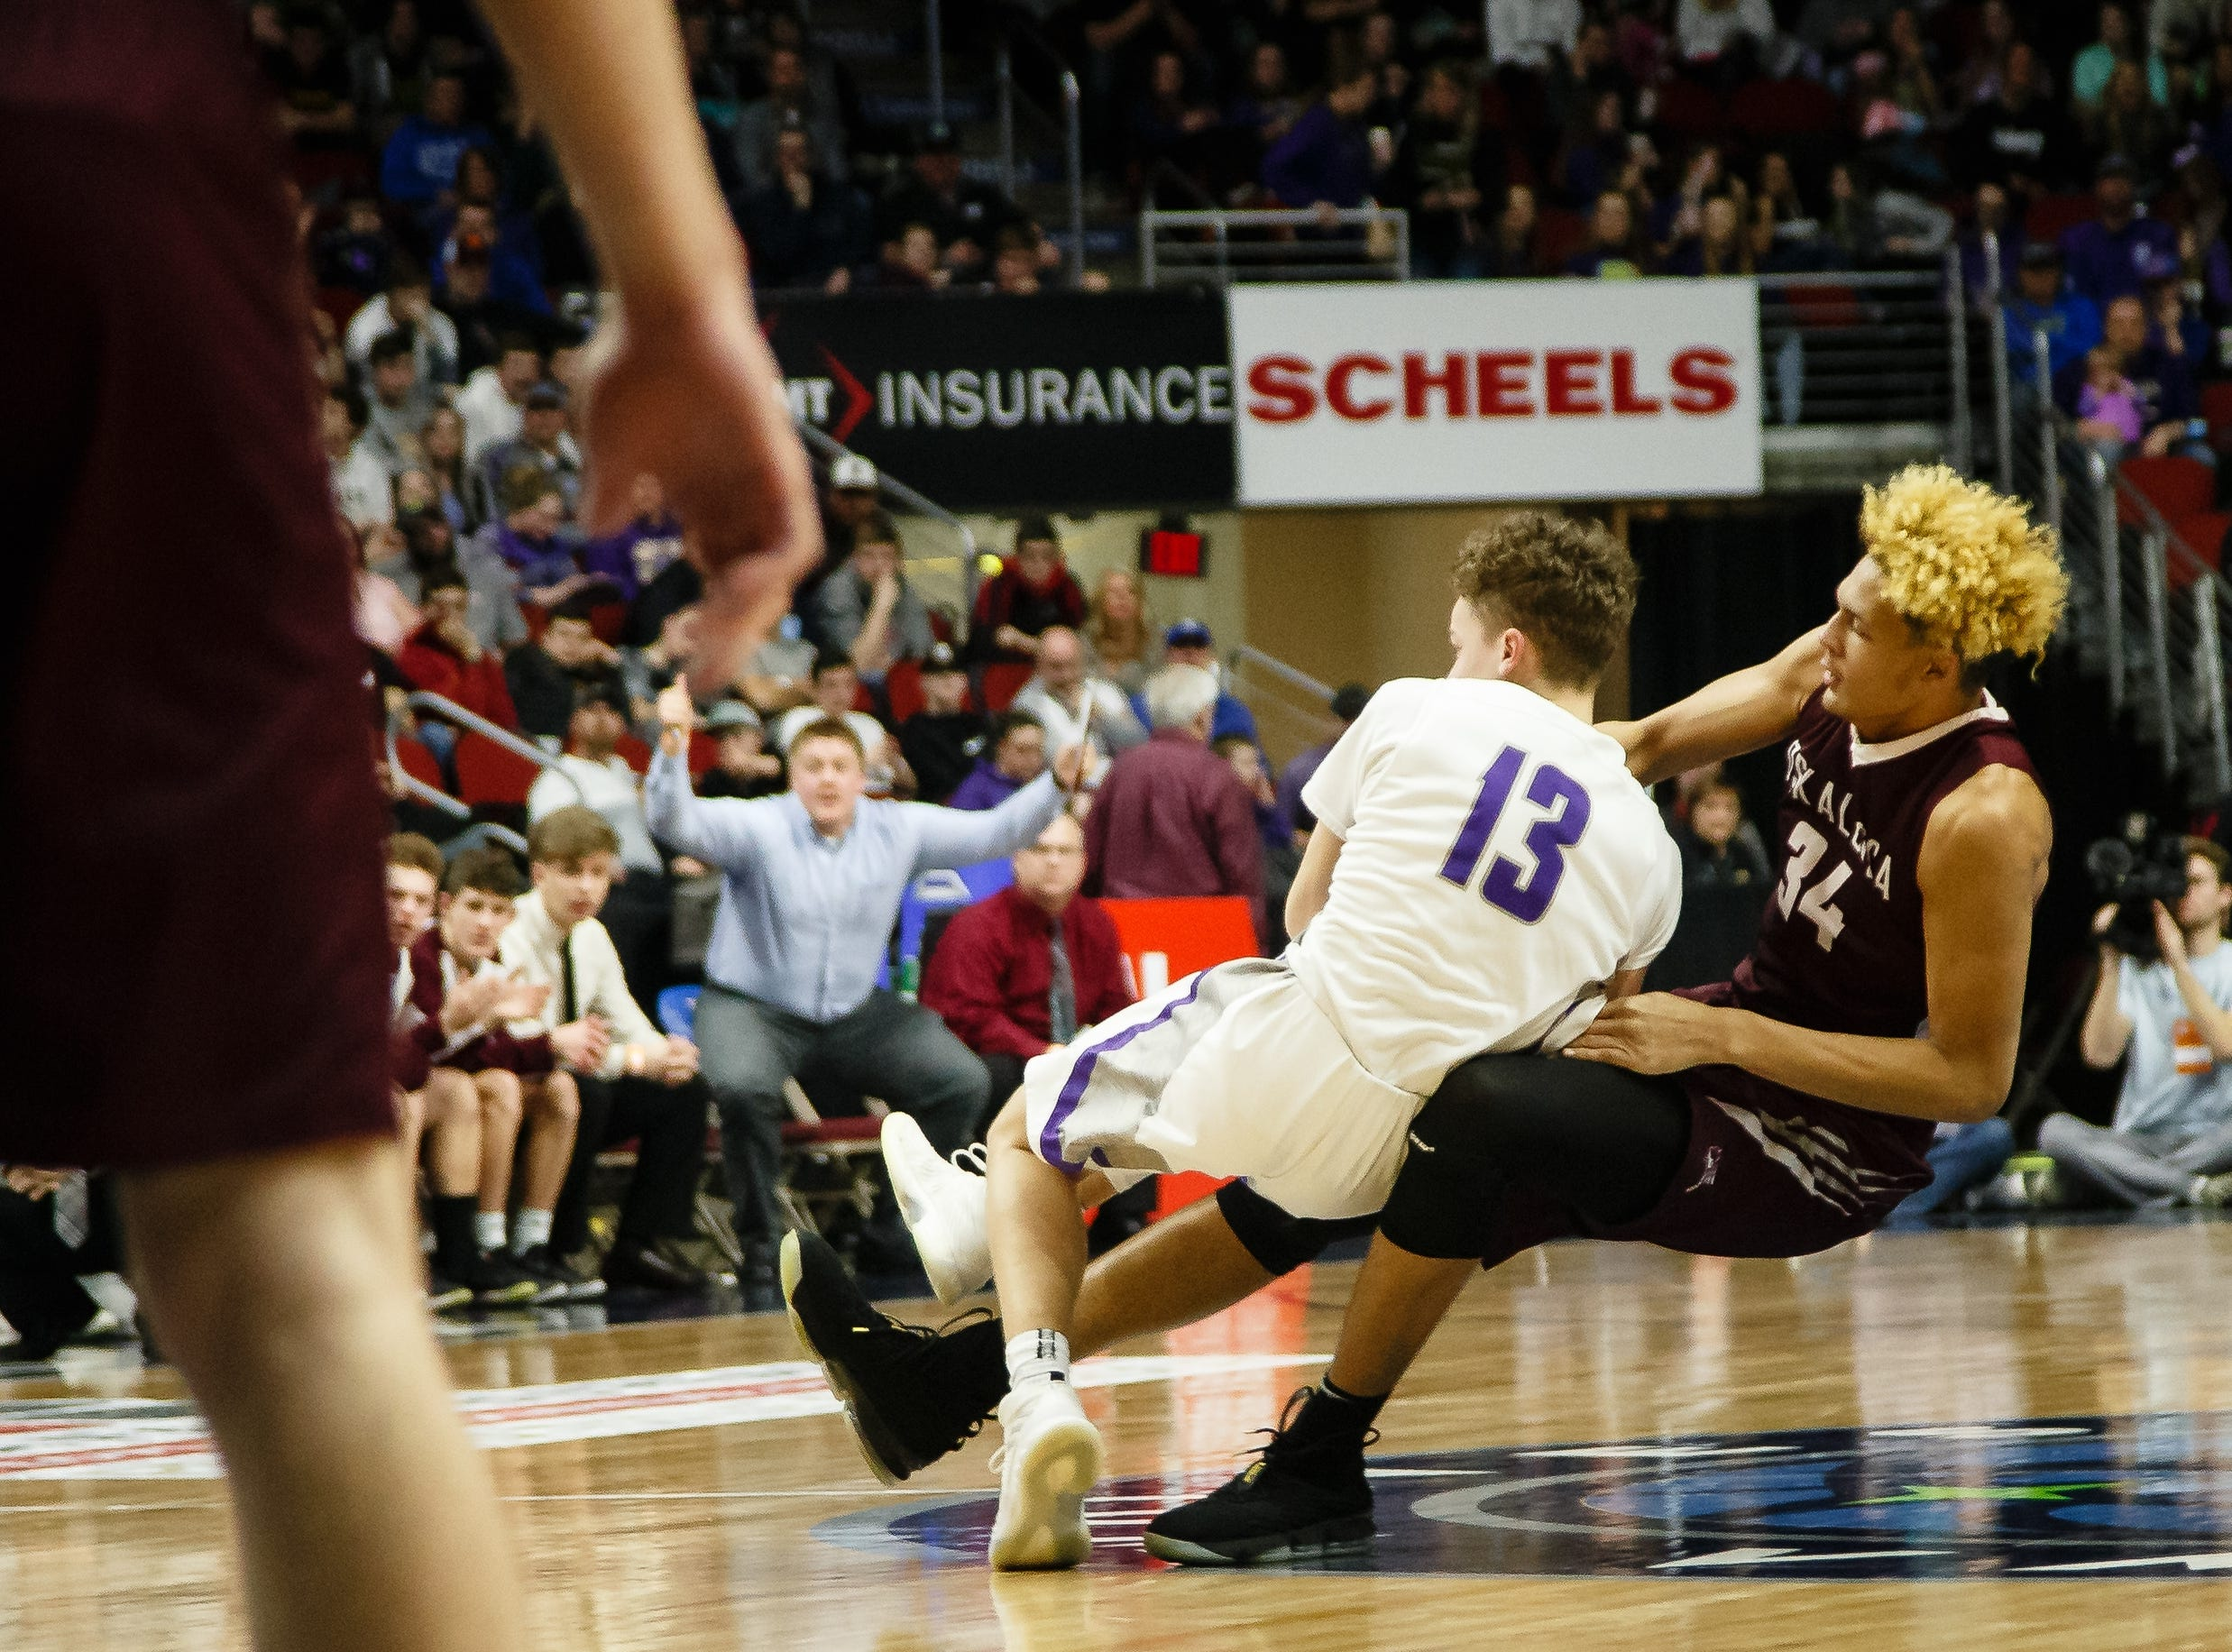 Norwalk's Bowen Born (13) and Oskaloosa's Xavier Foster (34) fight for the ball during their boys 3A state basketball championship game on Friday, March 8, 2019 in Des Moines. Oskaloosa would go on to defeat Norwalk 48-44 to win the 3A championship.